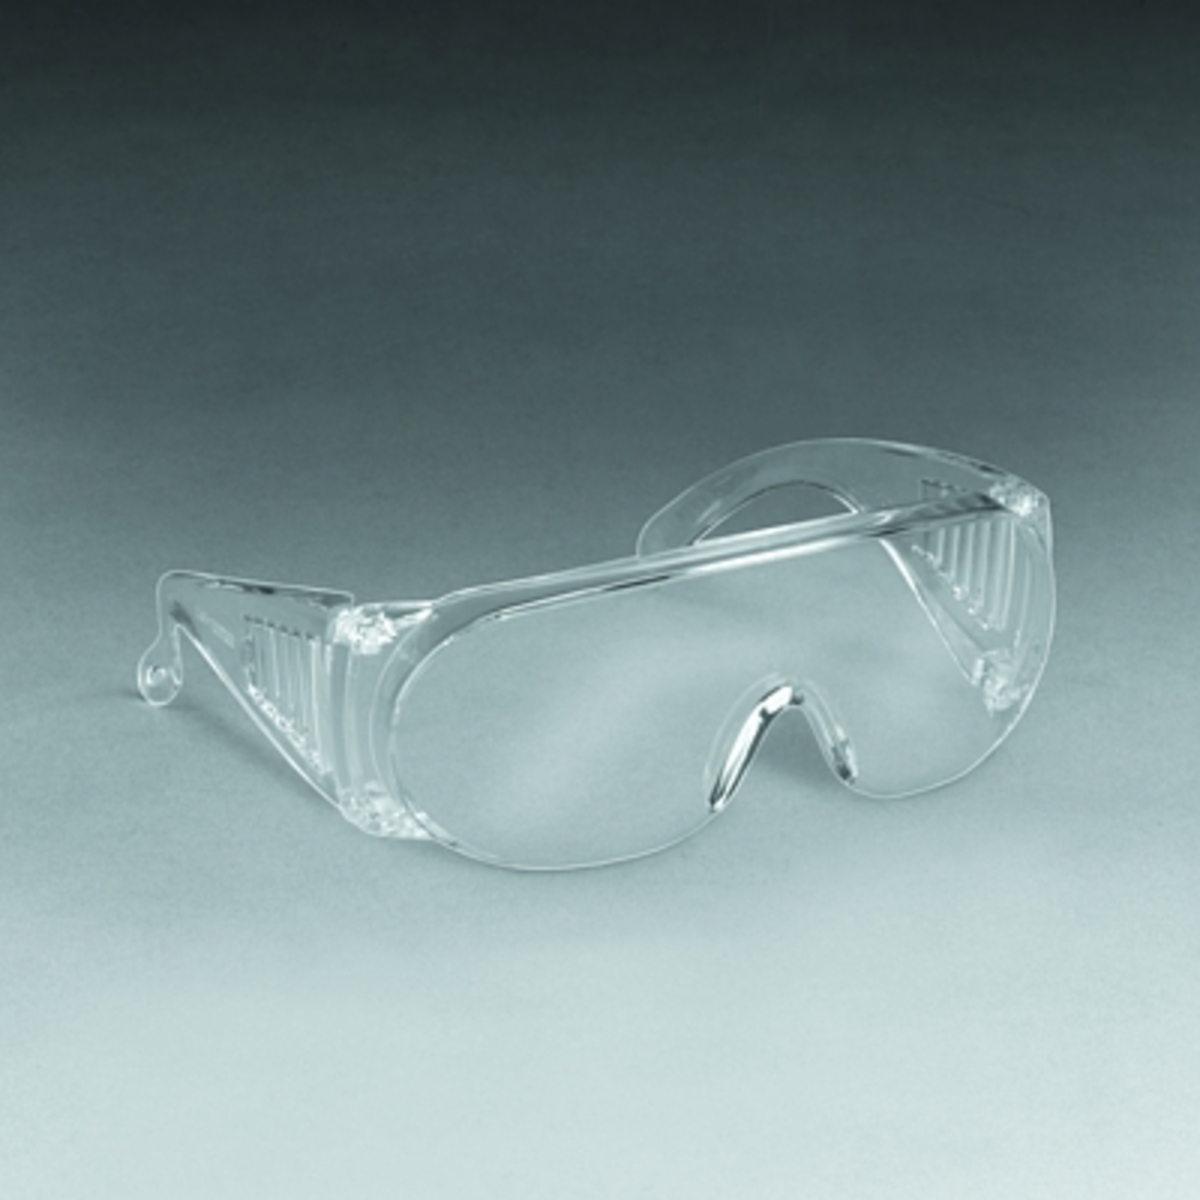 Surlunette de protection transparente